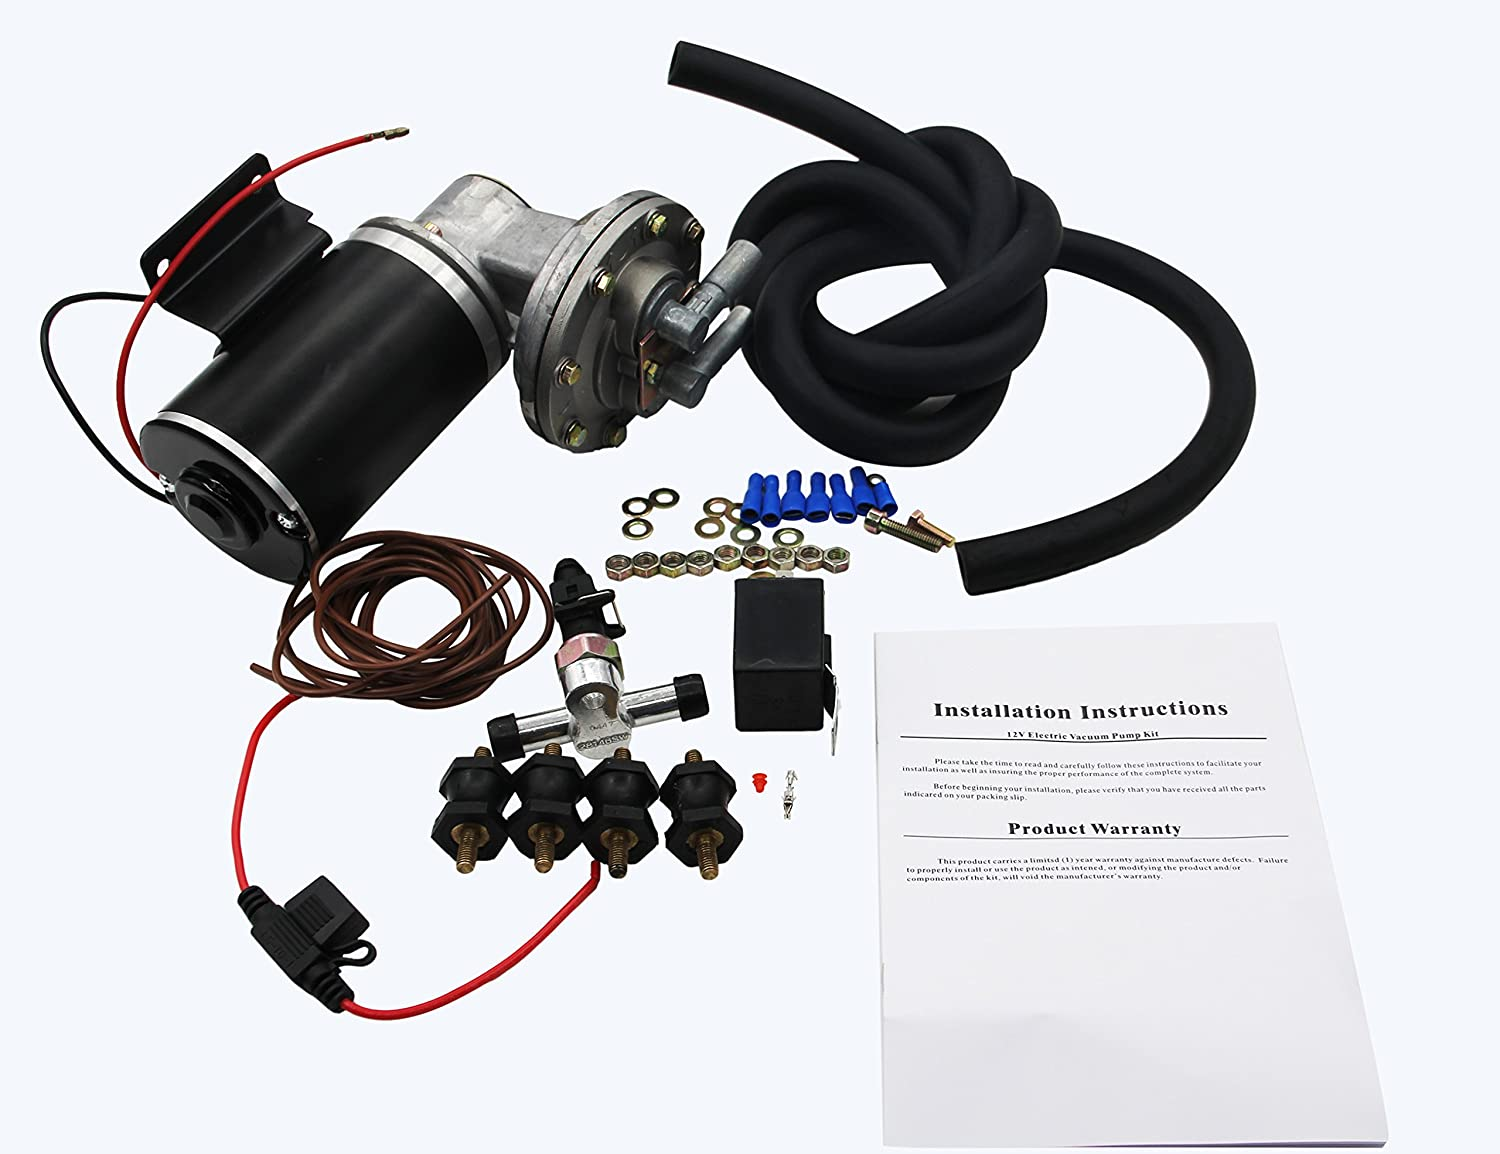 New Electric Brake Vacuum Pump Kit For Booster 28146 Wiring Diagram Sales Cell Phones Accessories